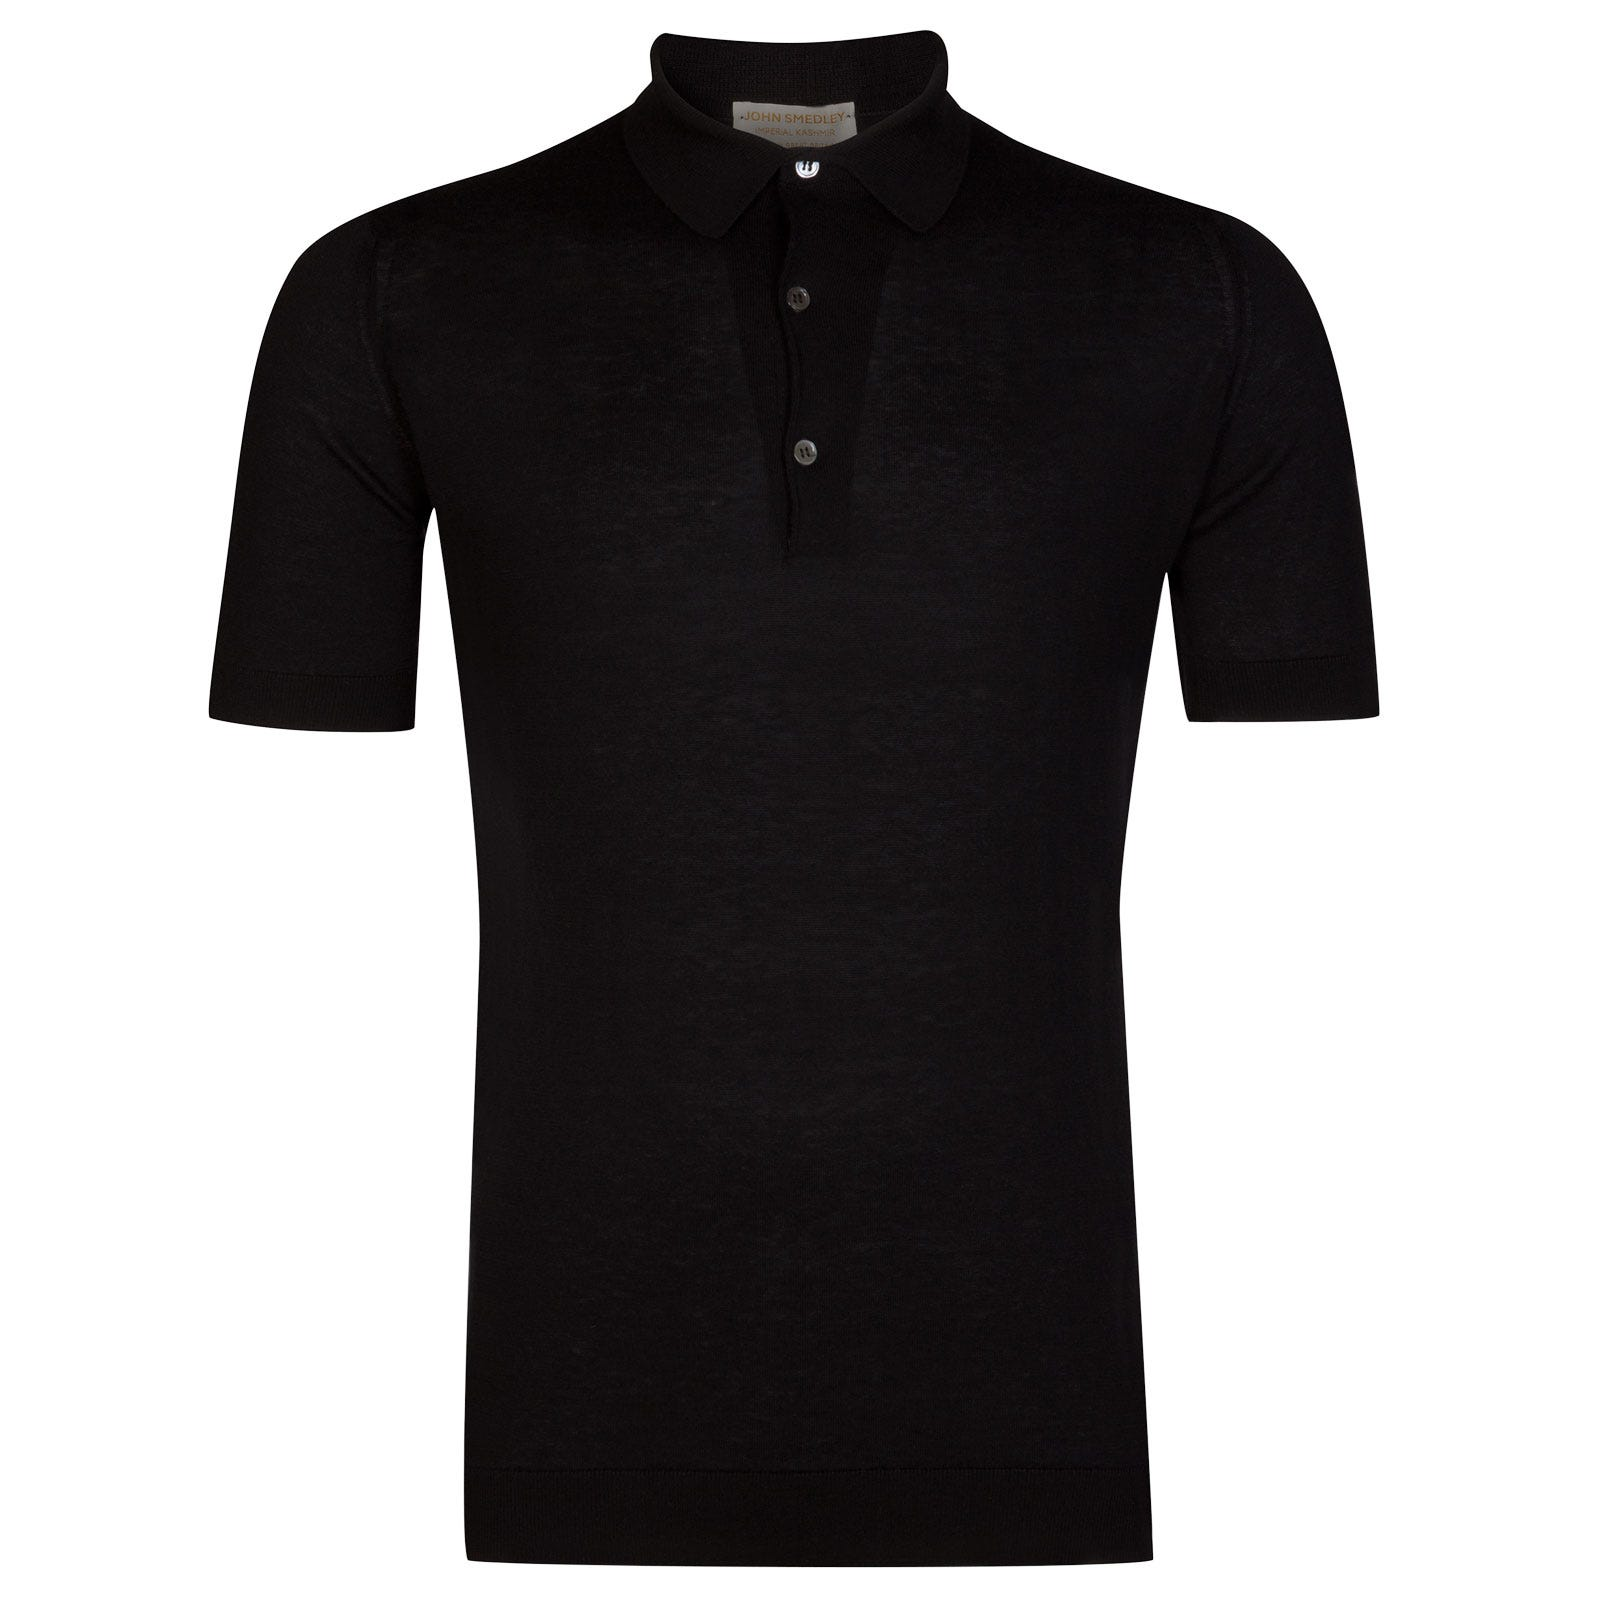 John Smedley Haddon Sea Island Cotton and Cashmere Shirt in Black-S